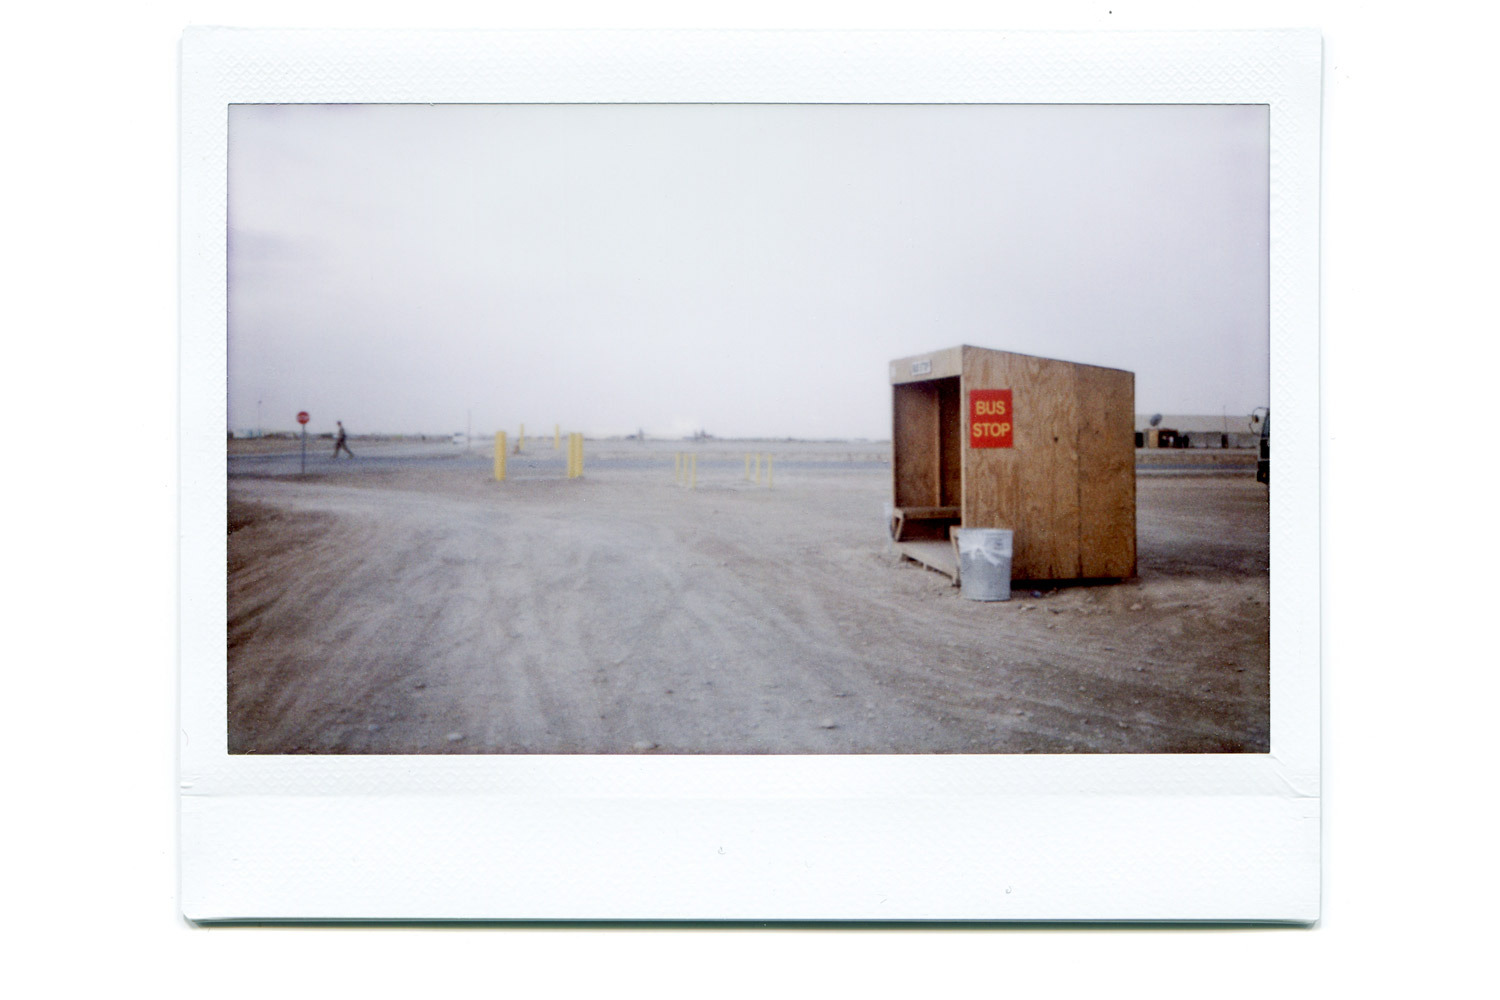 A bus stop on the American Camp Leatherneck.  I like the presence of the mundane in a conflict zone.